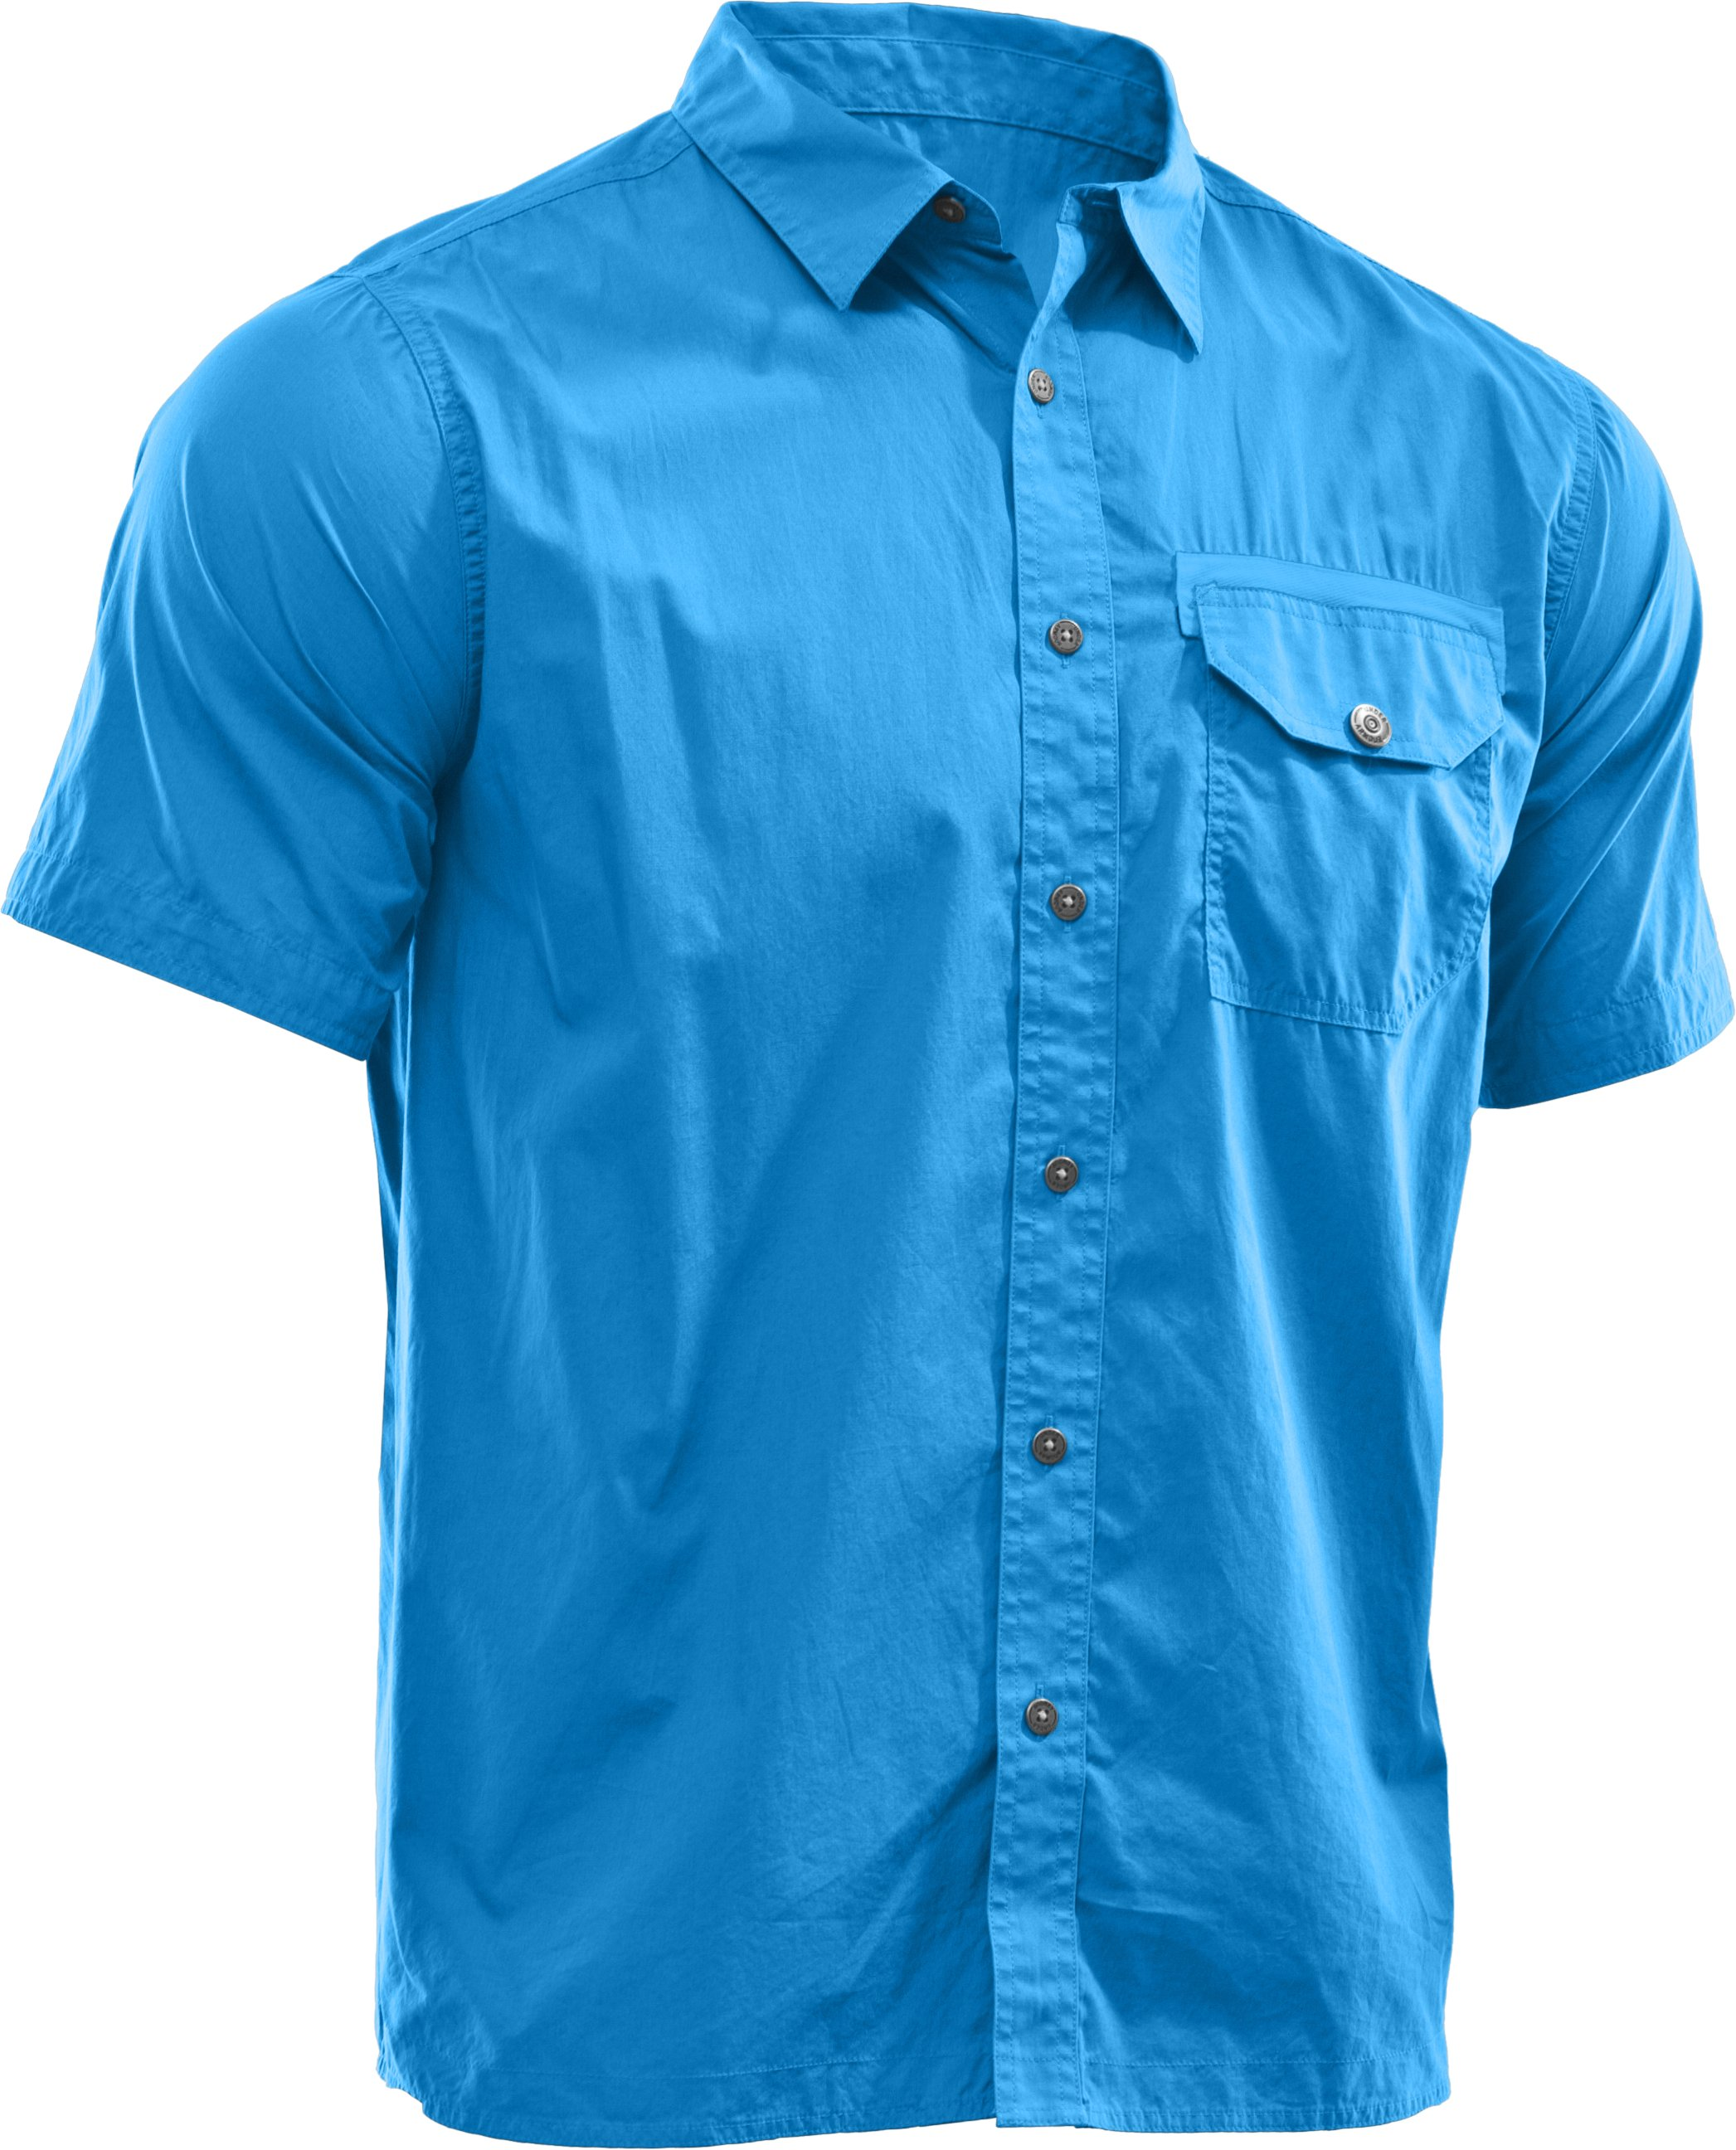 Men's Charged Cotton® Solid Short Sleeve, St. Tropez